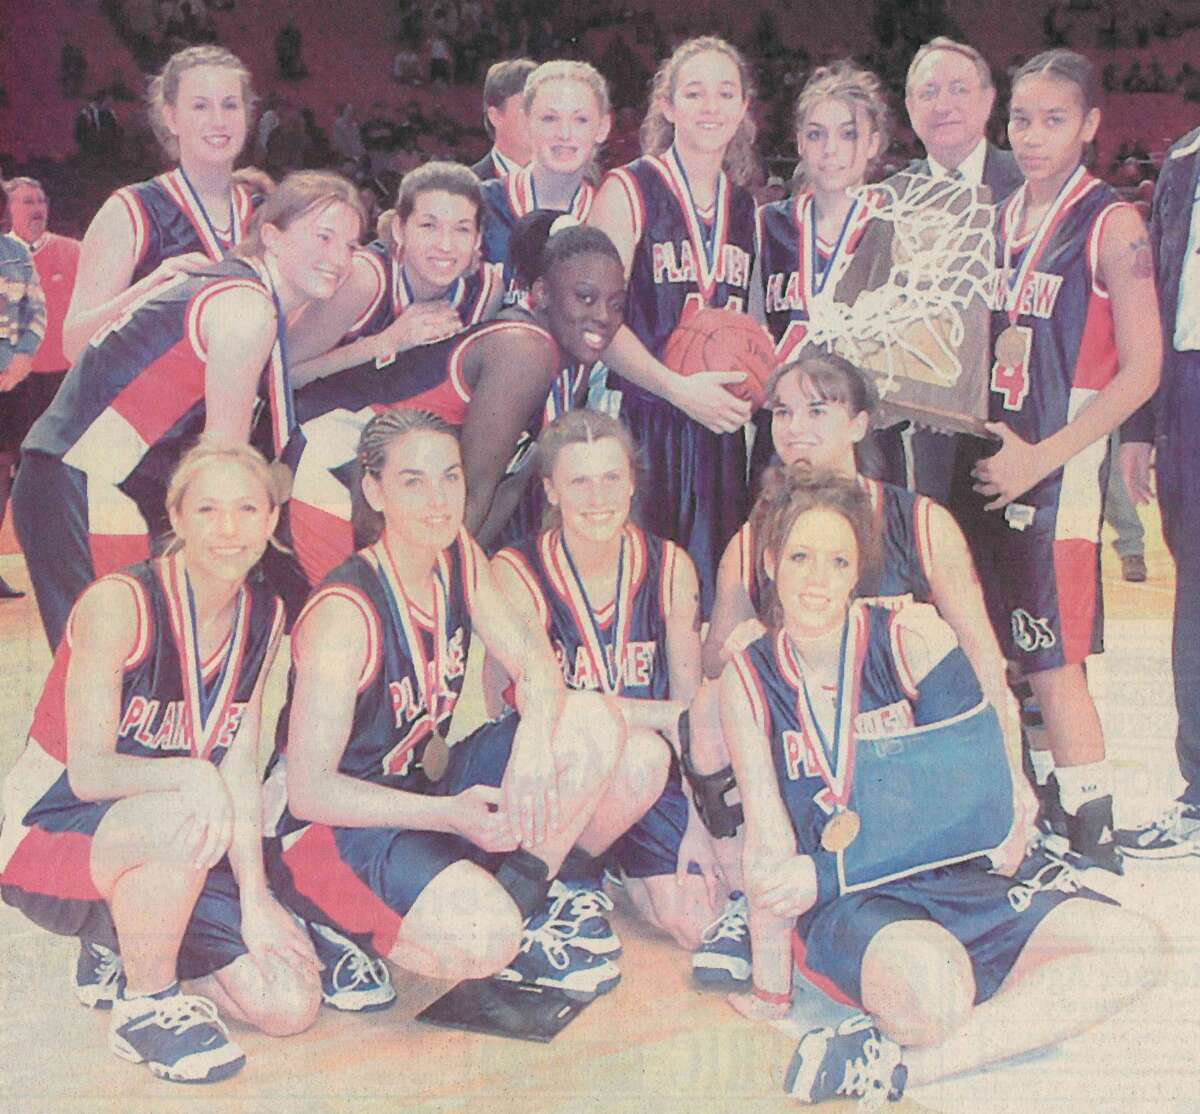 The Plainview Lady Bulldogs of the early 2000s were the most successful PHS athletic team in school history.